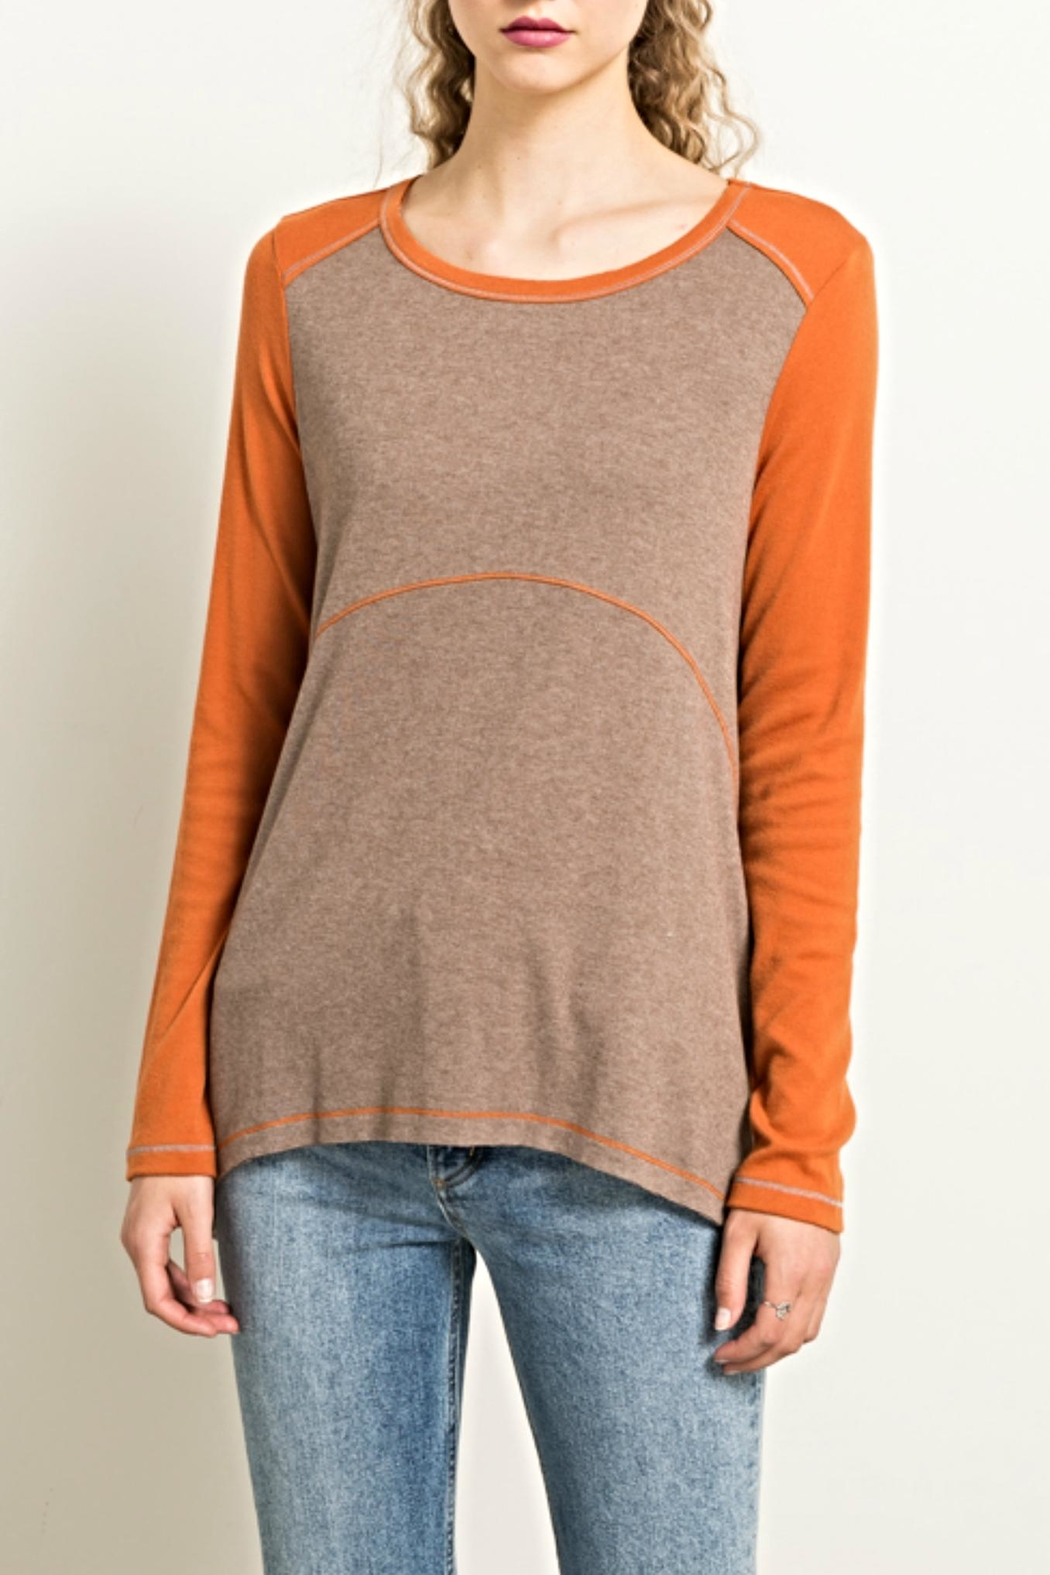 Hem & Thread Earthtones Tee Top - Main Image